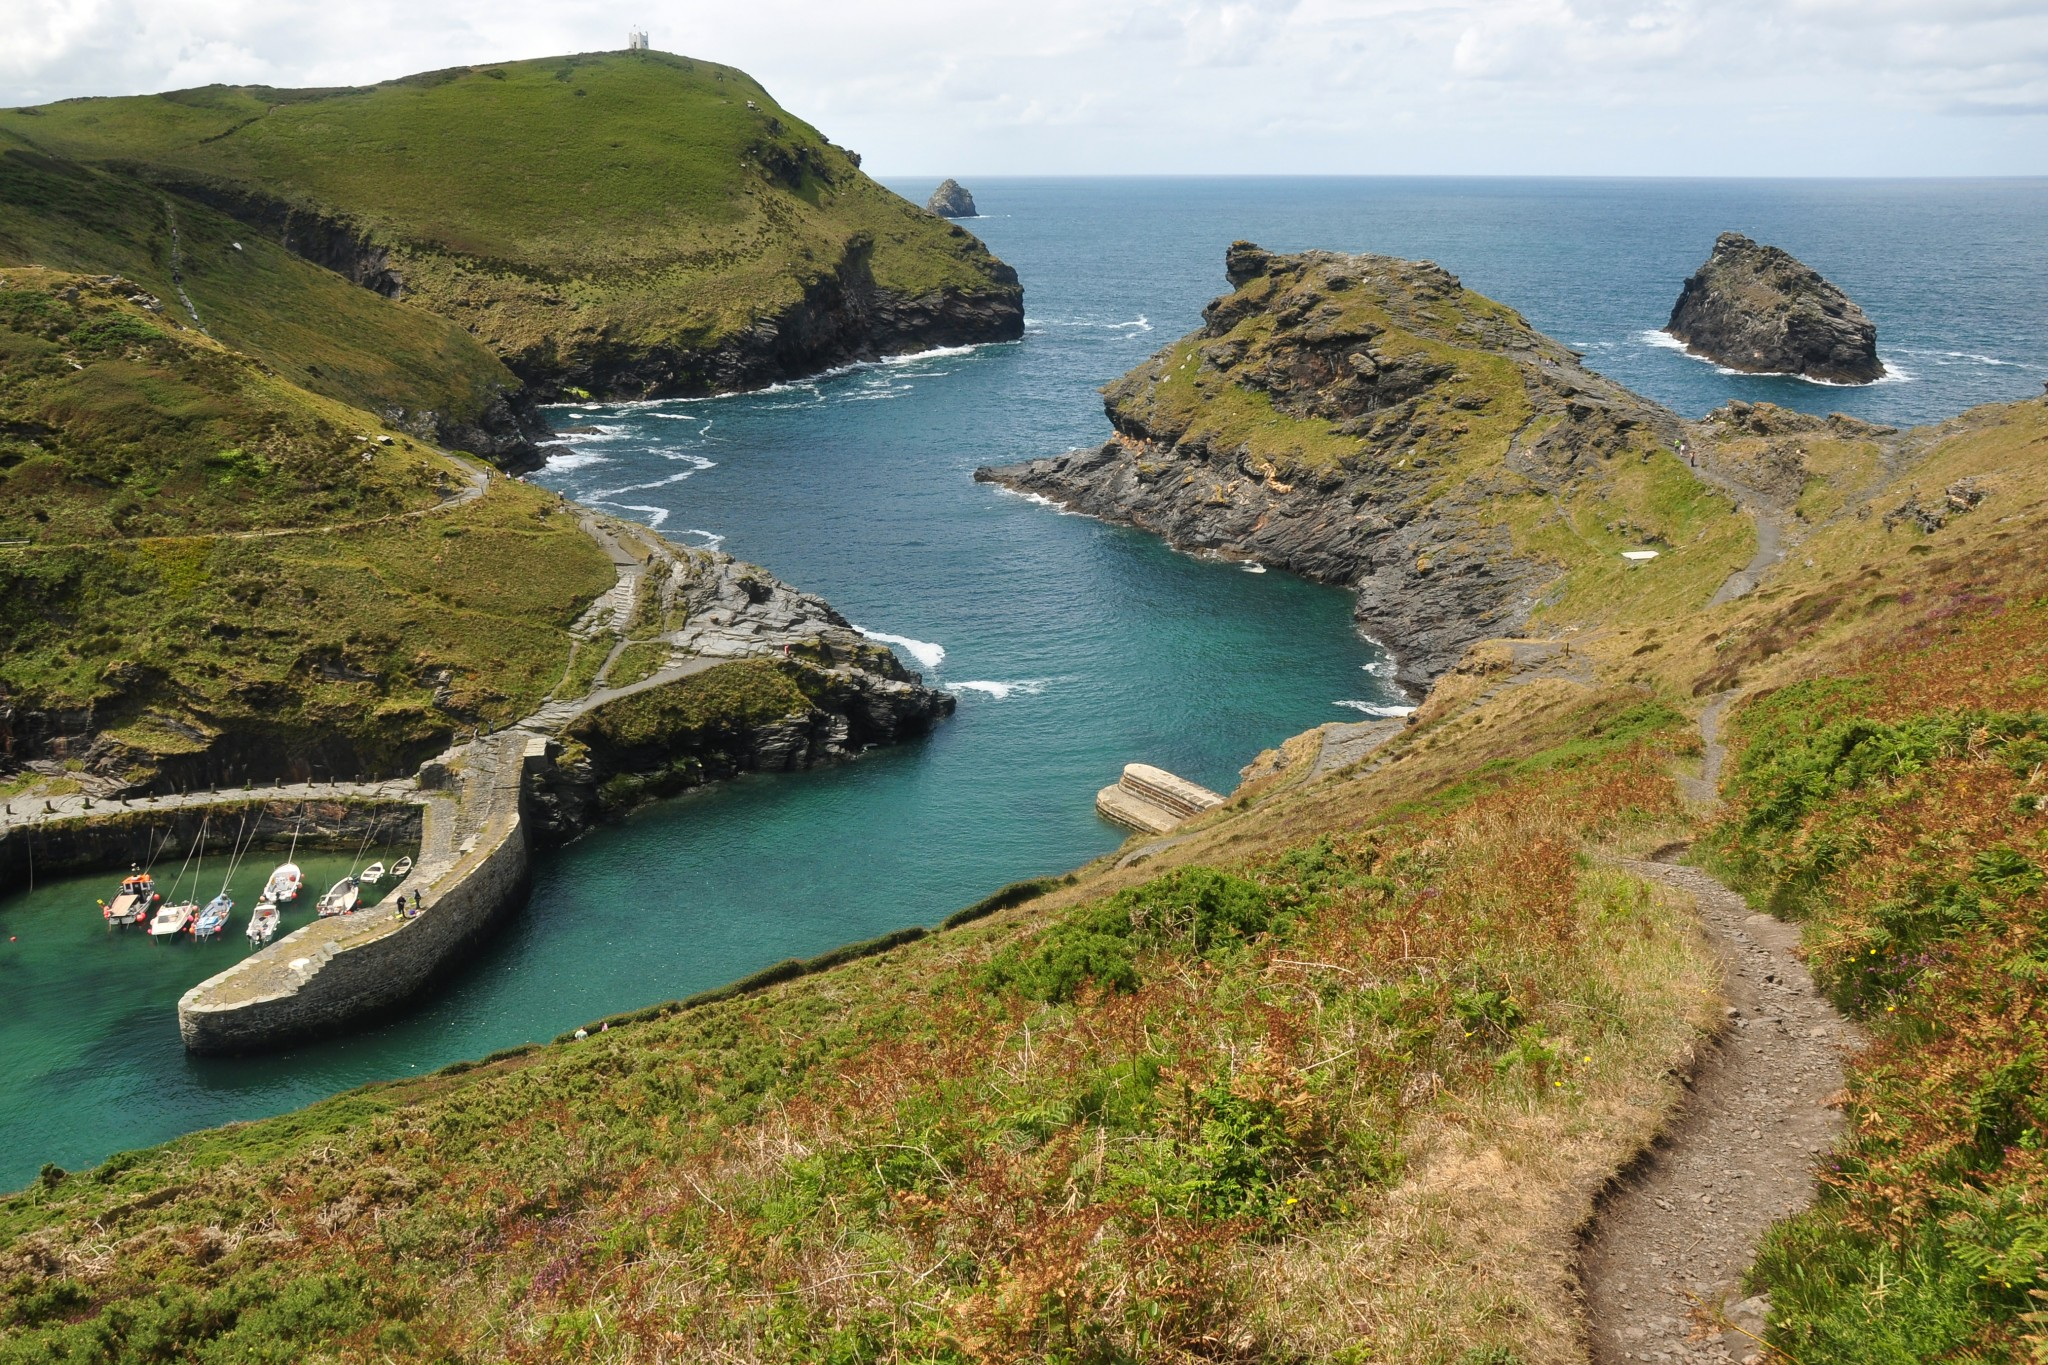 Guided walk around Boscastle Wednesday 6th July at 2pm